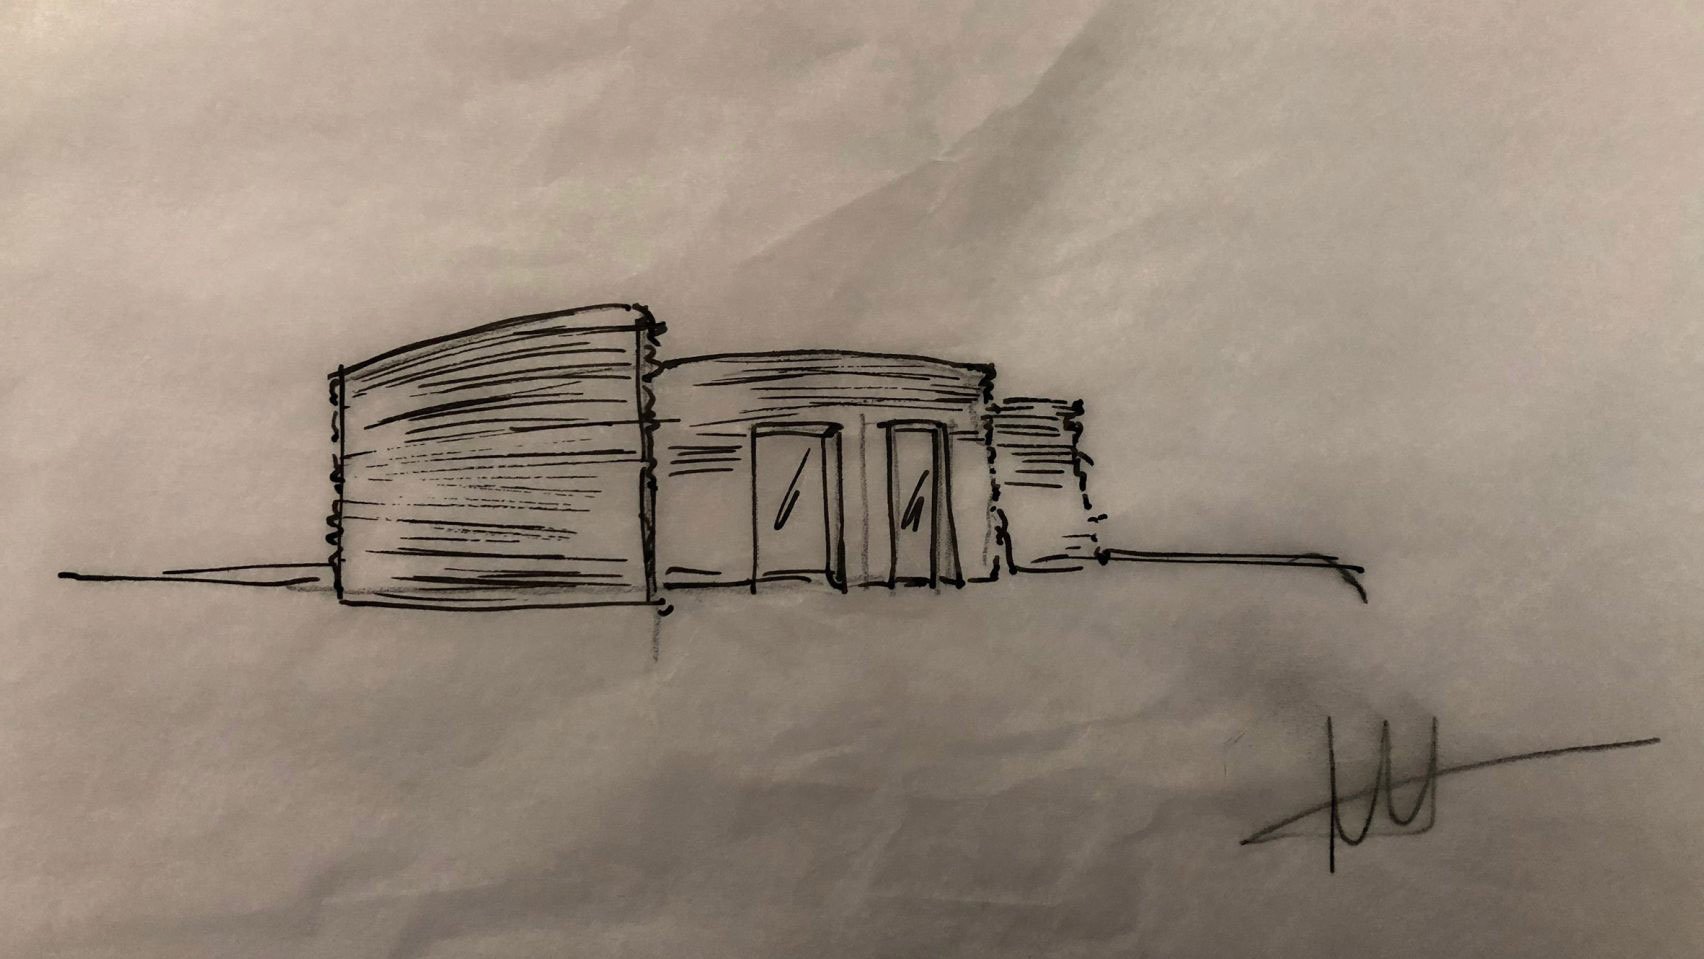 A sketch of CLS Architetti's 3D printed house